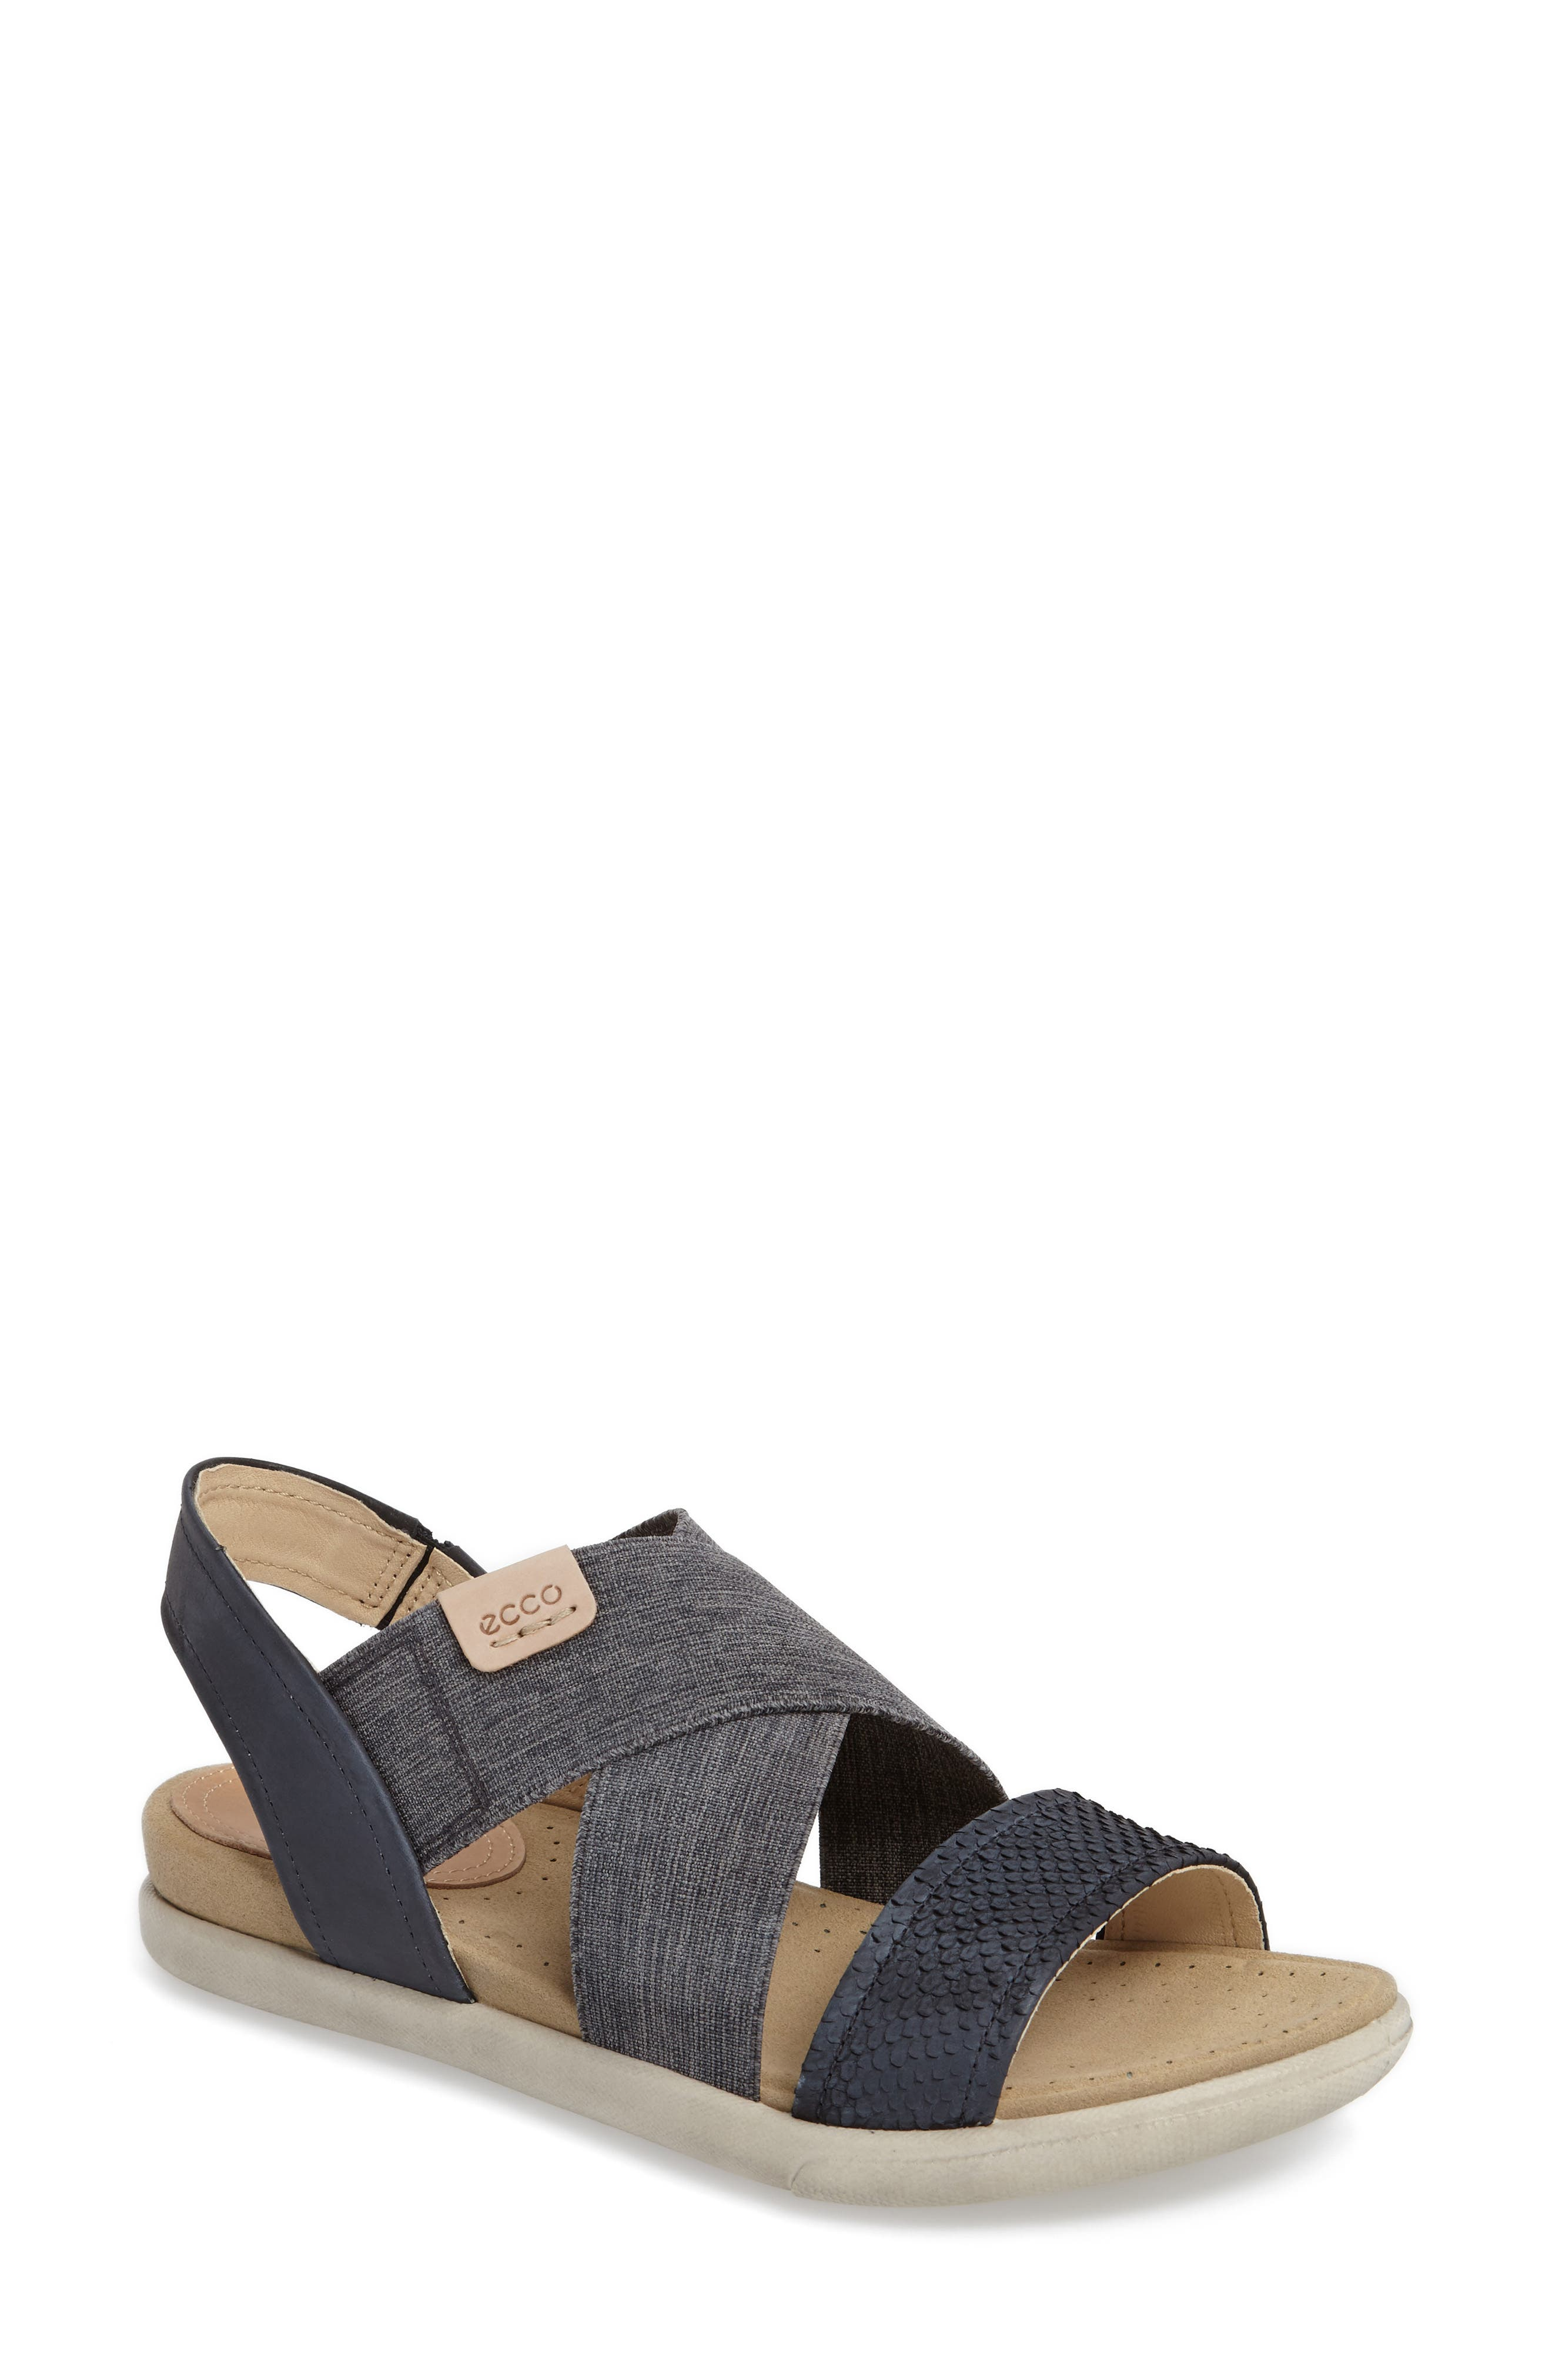 Damara Cross-Strap Sandal,                             Main thumbnail 5, color,